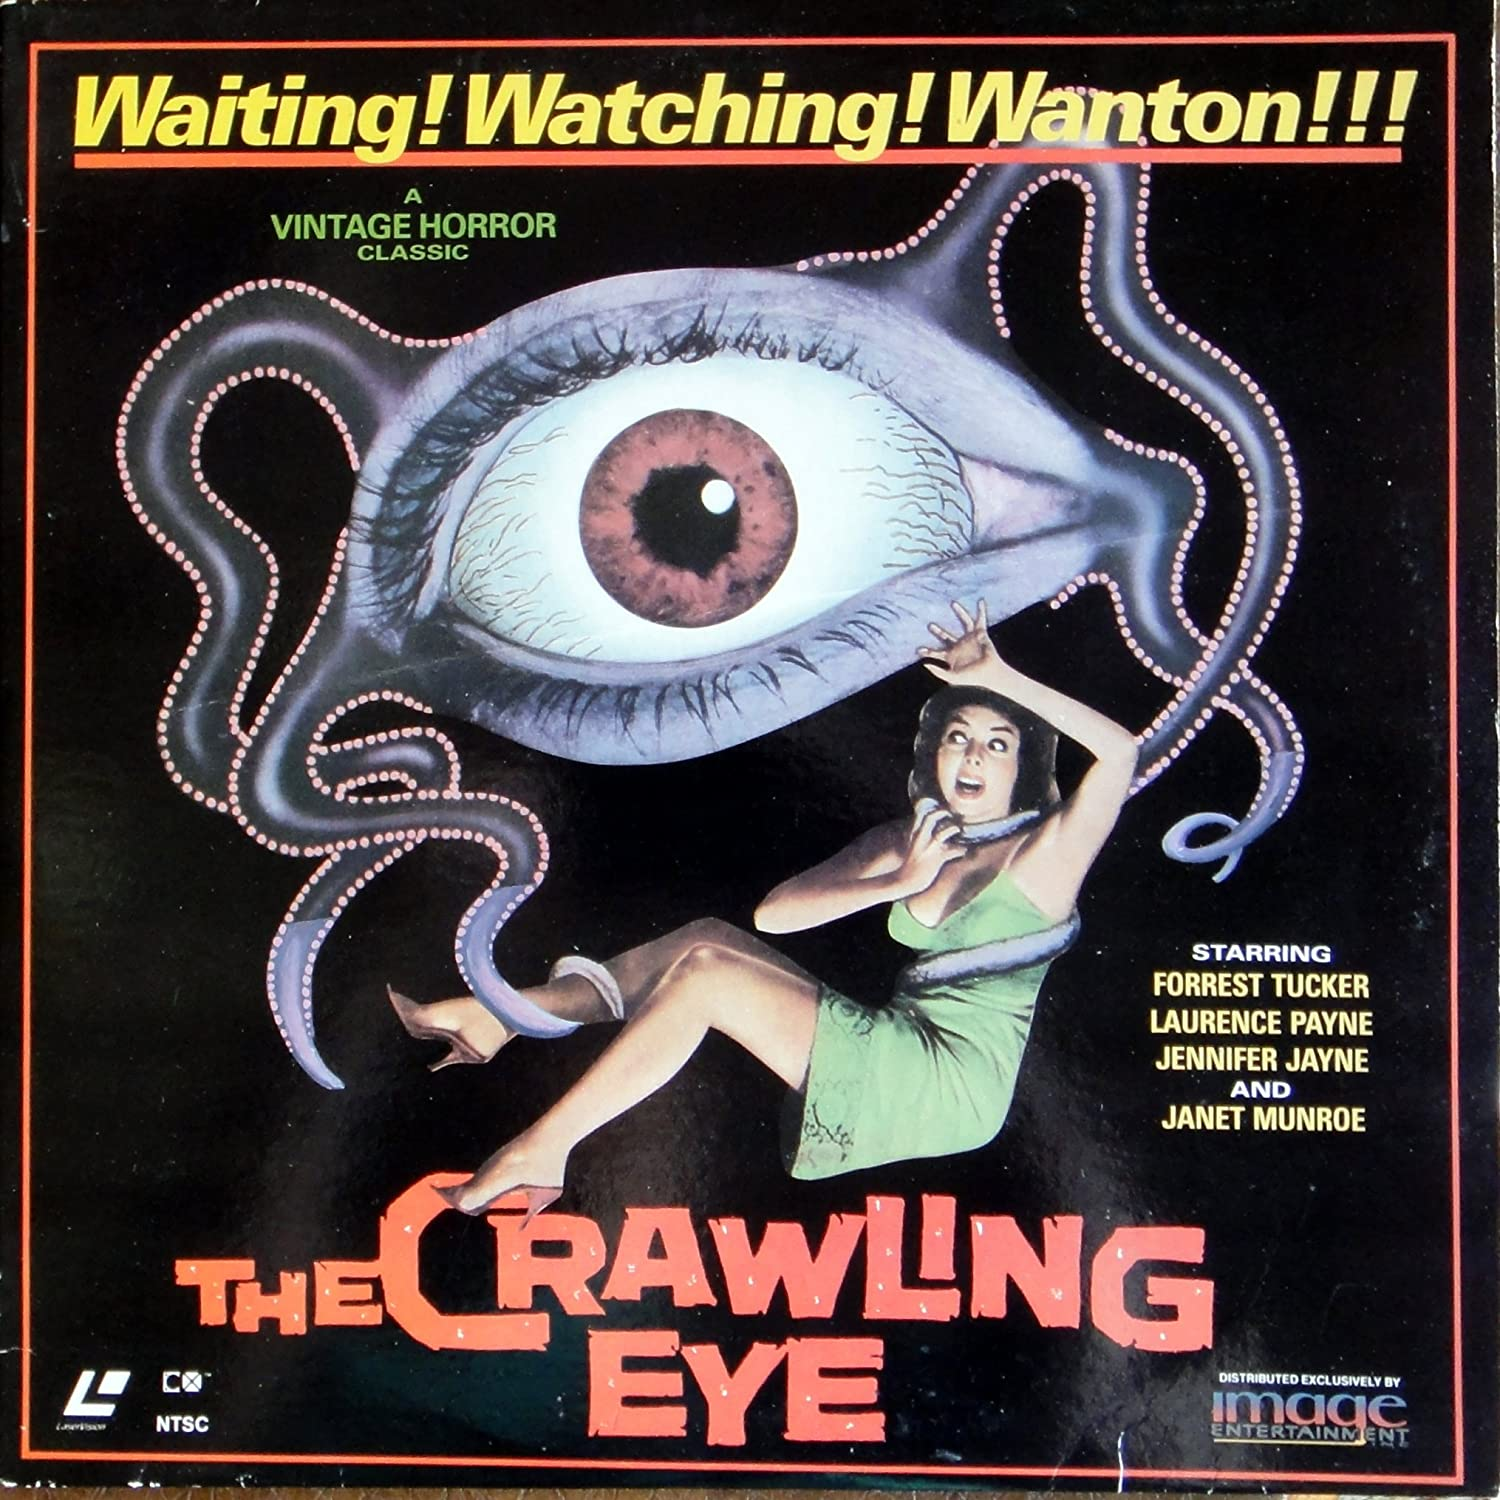 Amazon.com: The Crawling Eye laserdisc: Forrest Tucker, Laurence Payne,  Robert S. Baker: Movies & TV